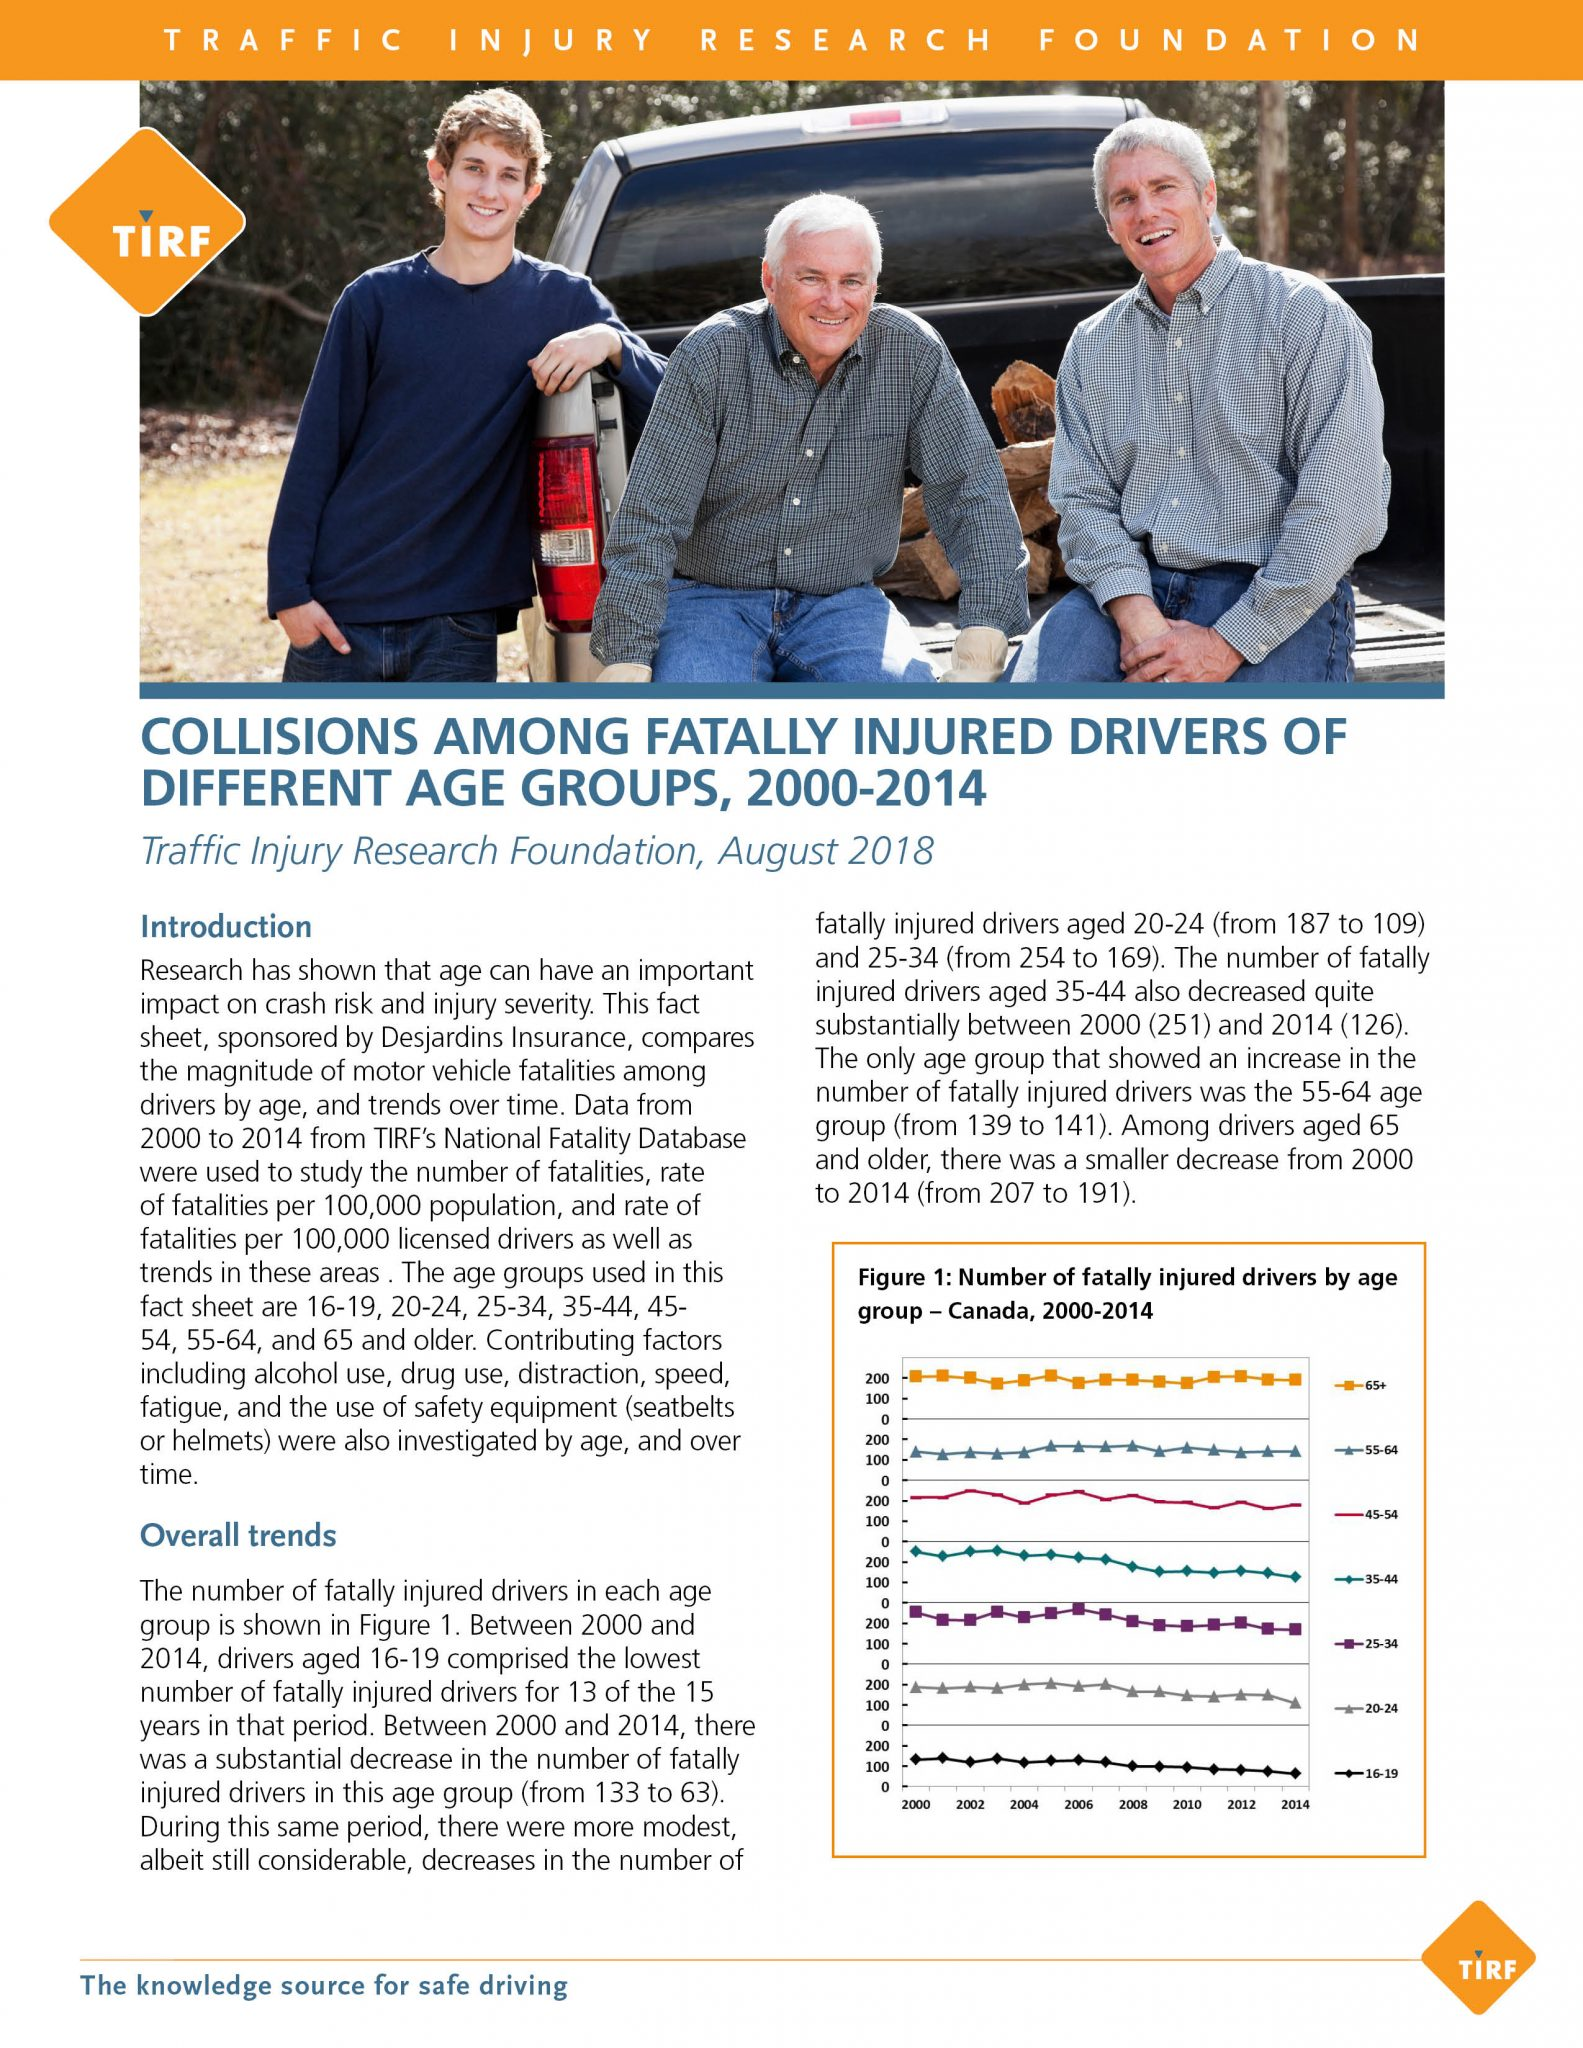 Collisions Among Fatally Injured Drivers of Different Age Groups, 2000-2014